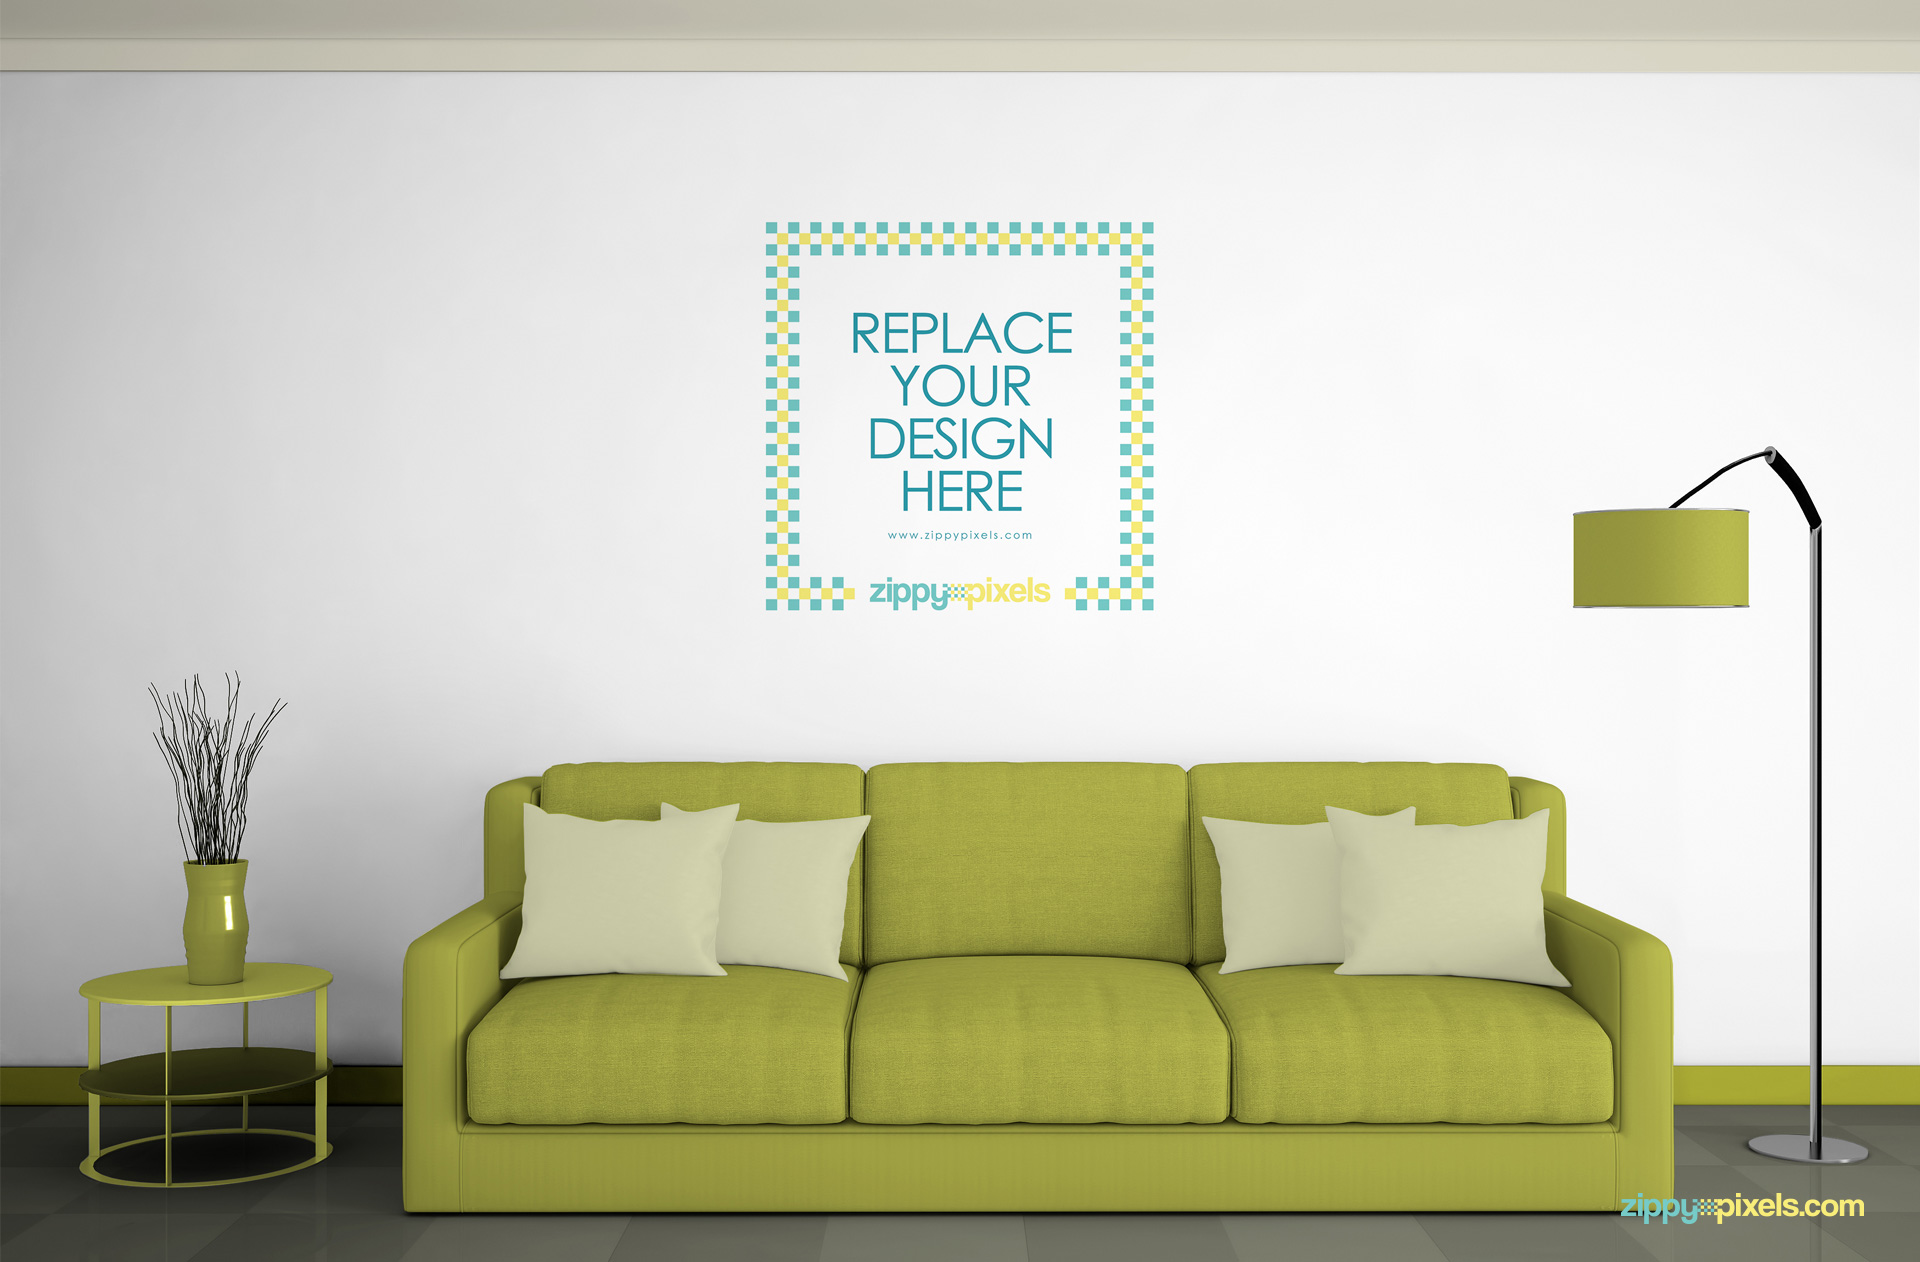 Goregeous wall art mockup for free